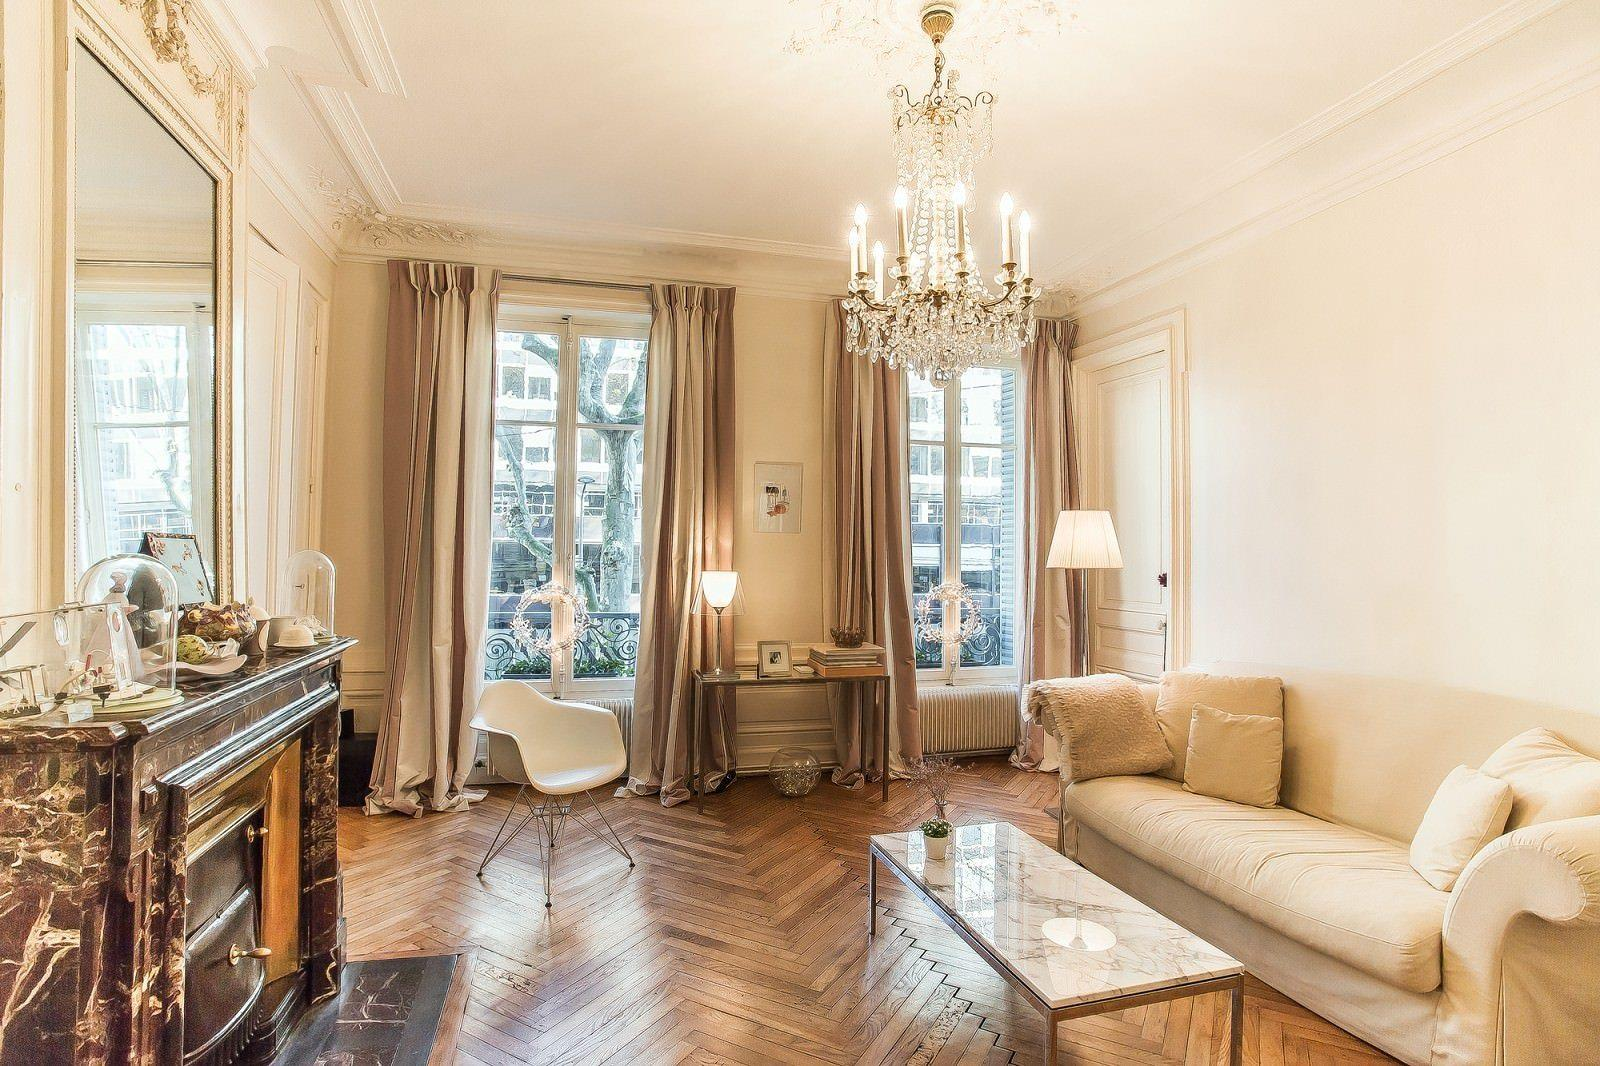 Parisian Apartment With 4 Spacious Rooms For Sale In The 16th Arrondissement Of Paris France